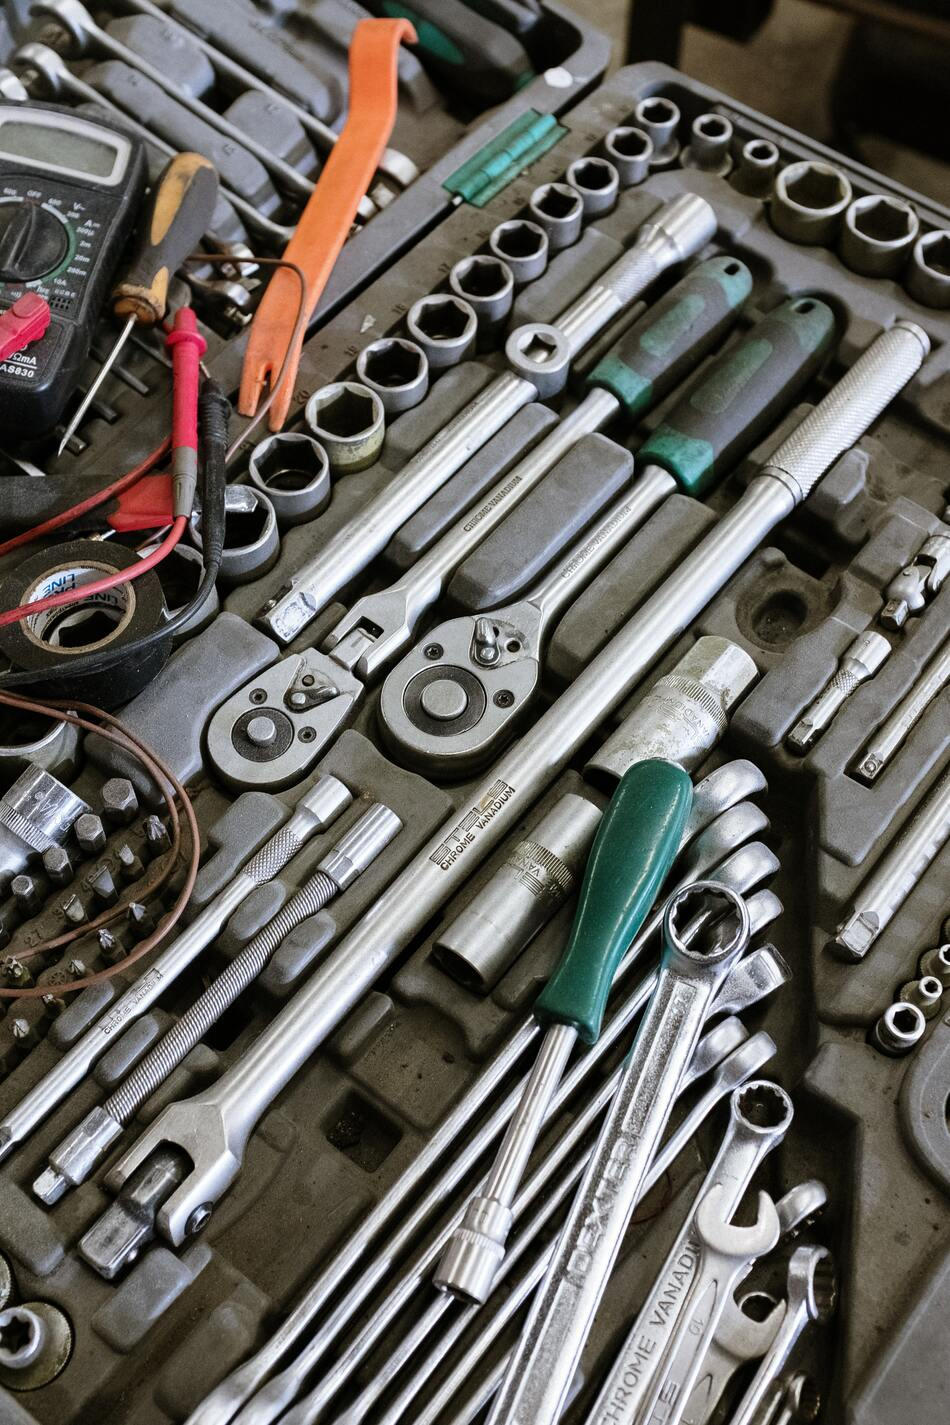 Individuals in your organisation require specialist tools to perform their job. We believe they know best what they need to make your organisation succeed.